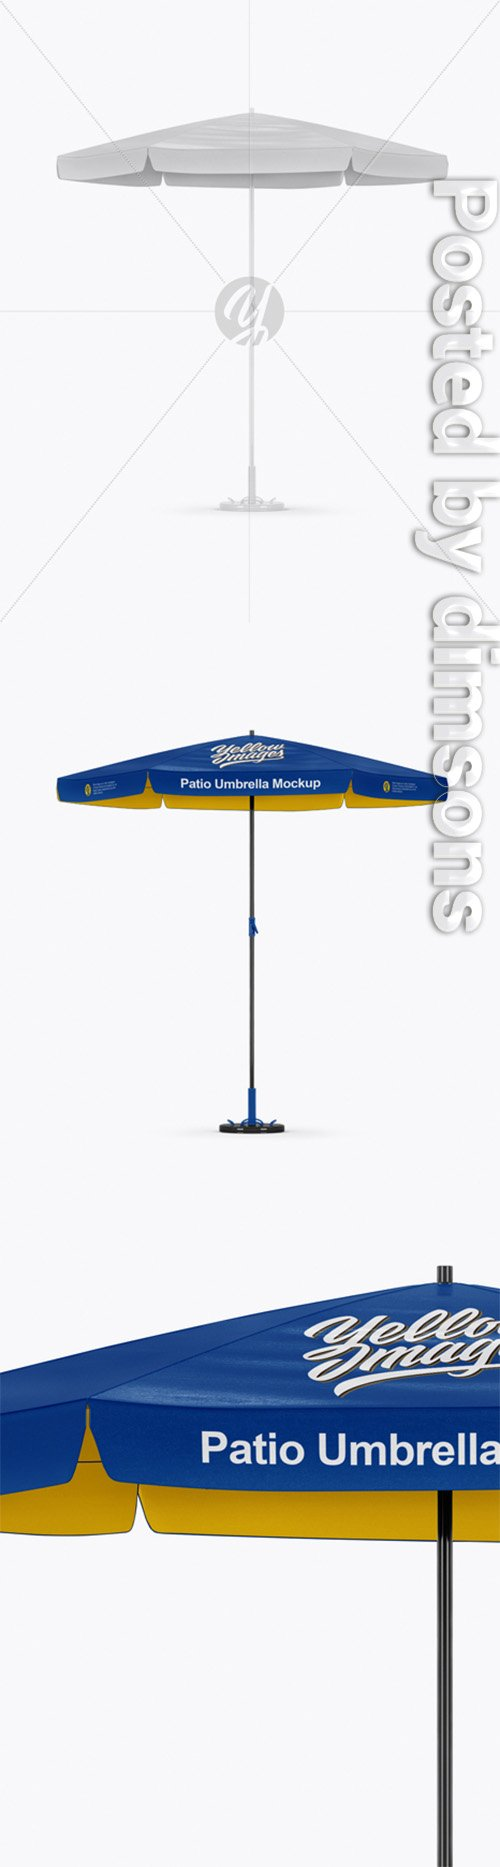 Glossy Patio Umbrella Mockup - Front View 30585 TIF